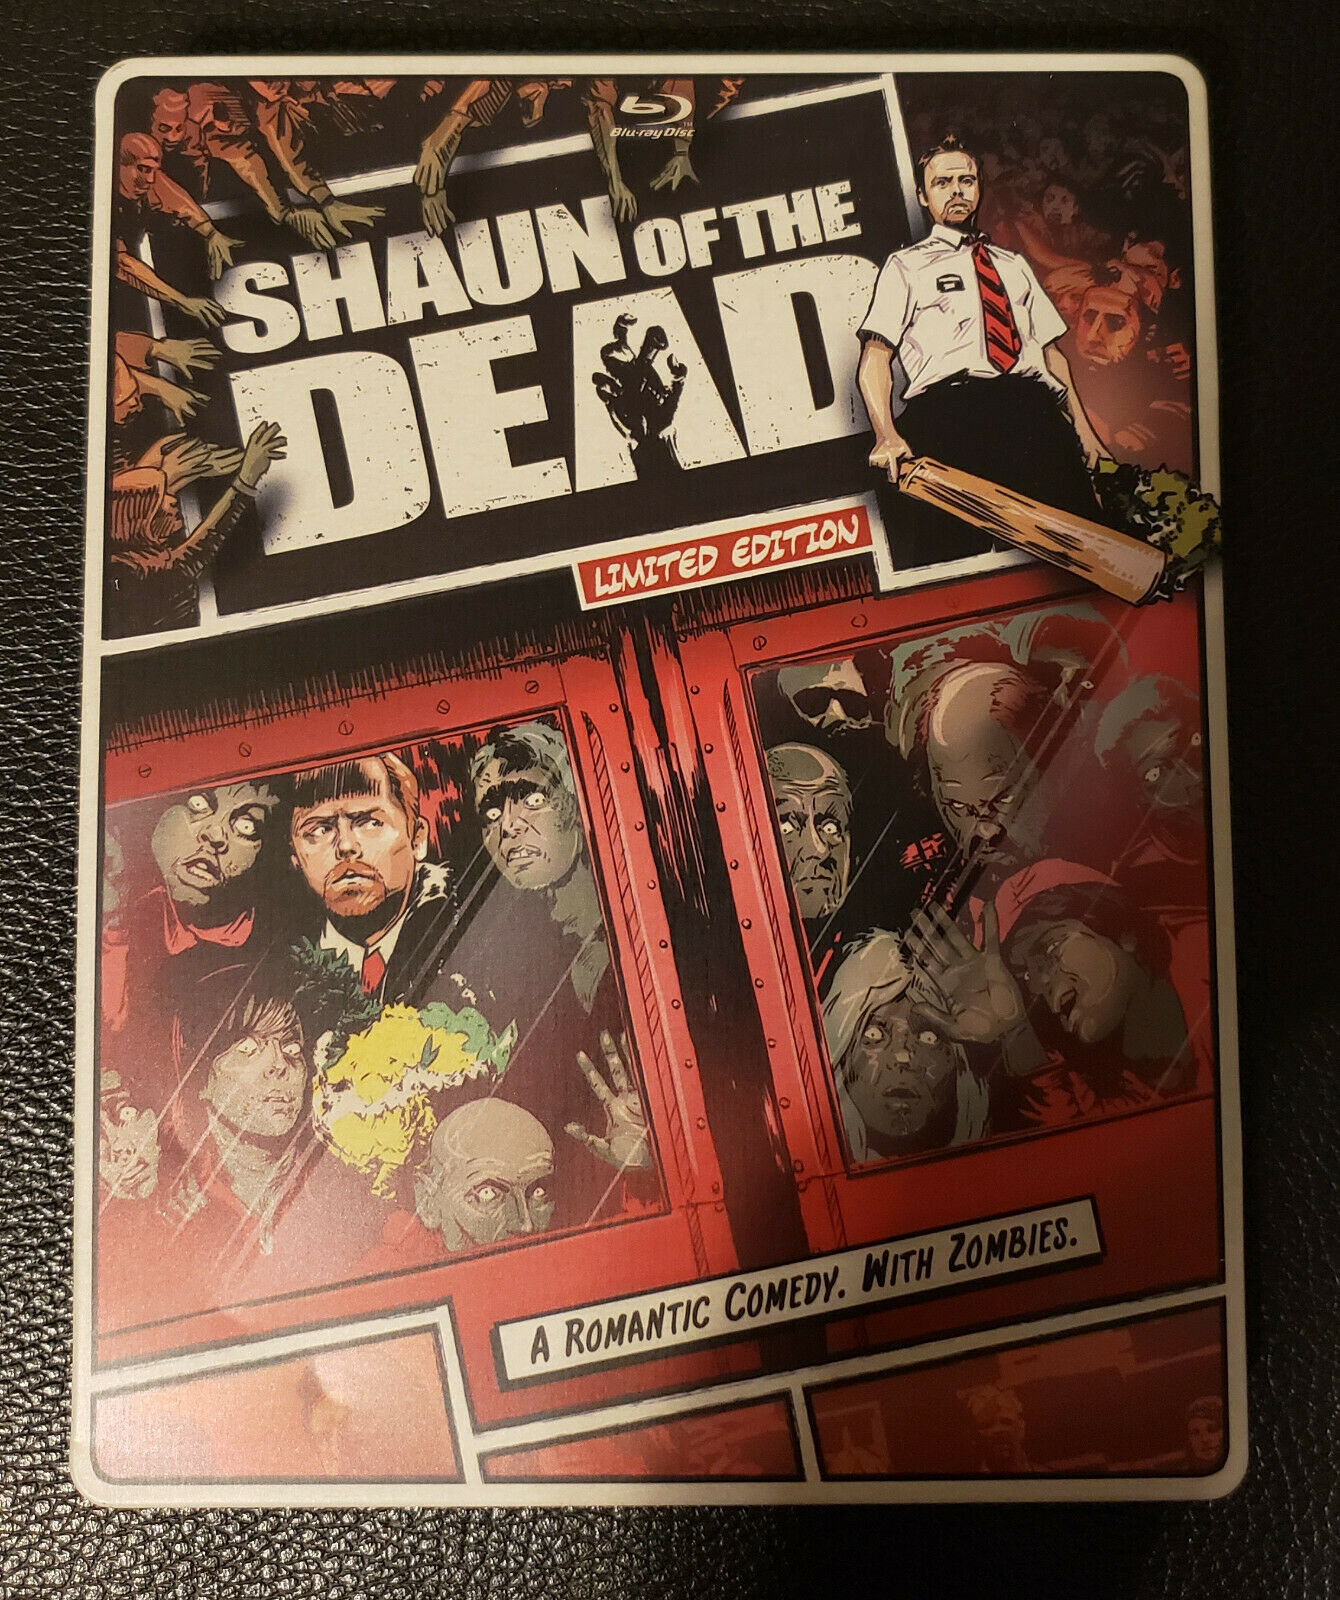 Shaun of the Dead Steelbook (Two-Disc Blu-ray/DVD Combo) (2008)